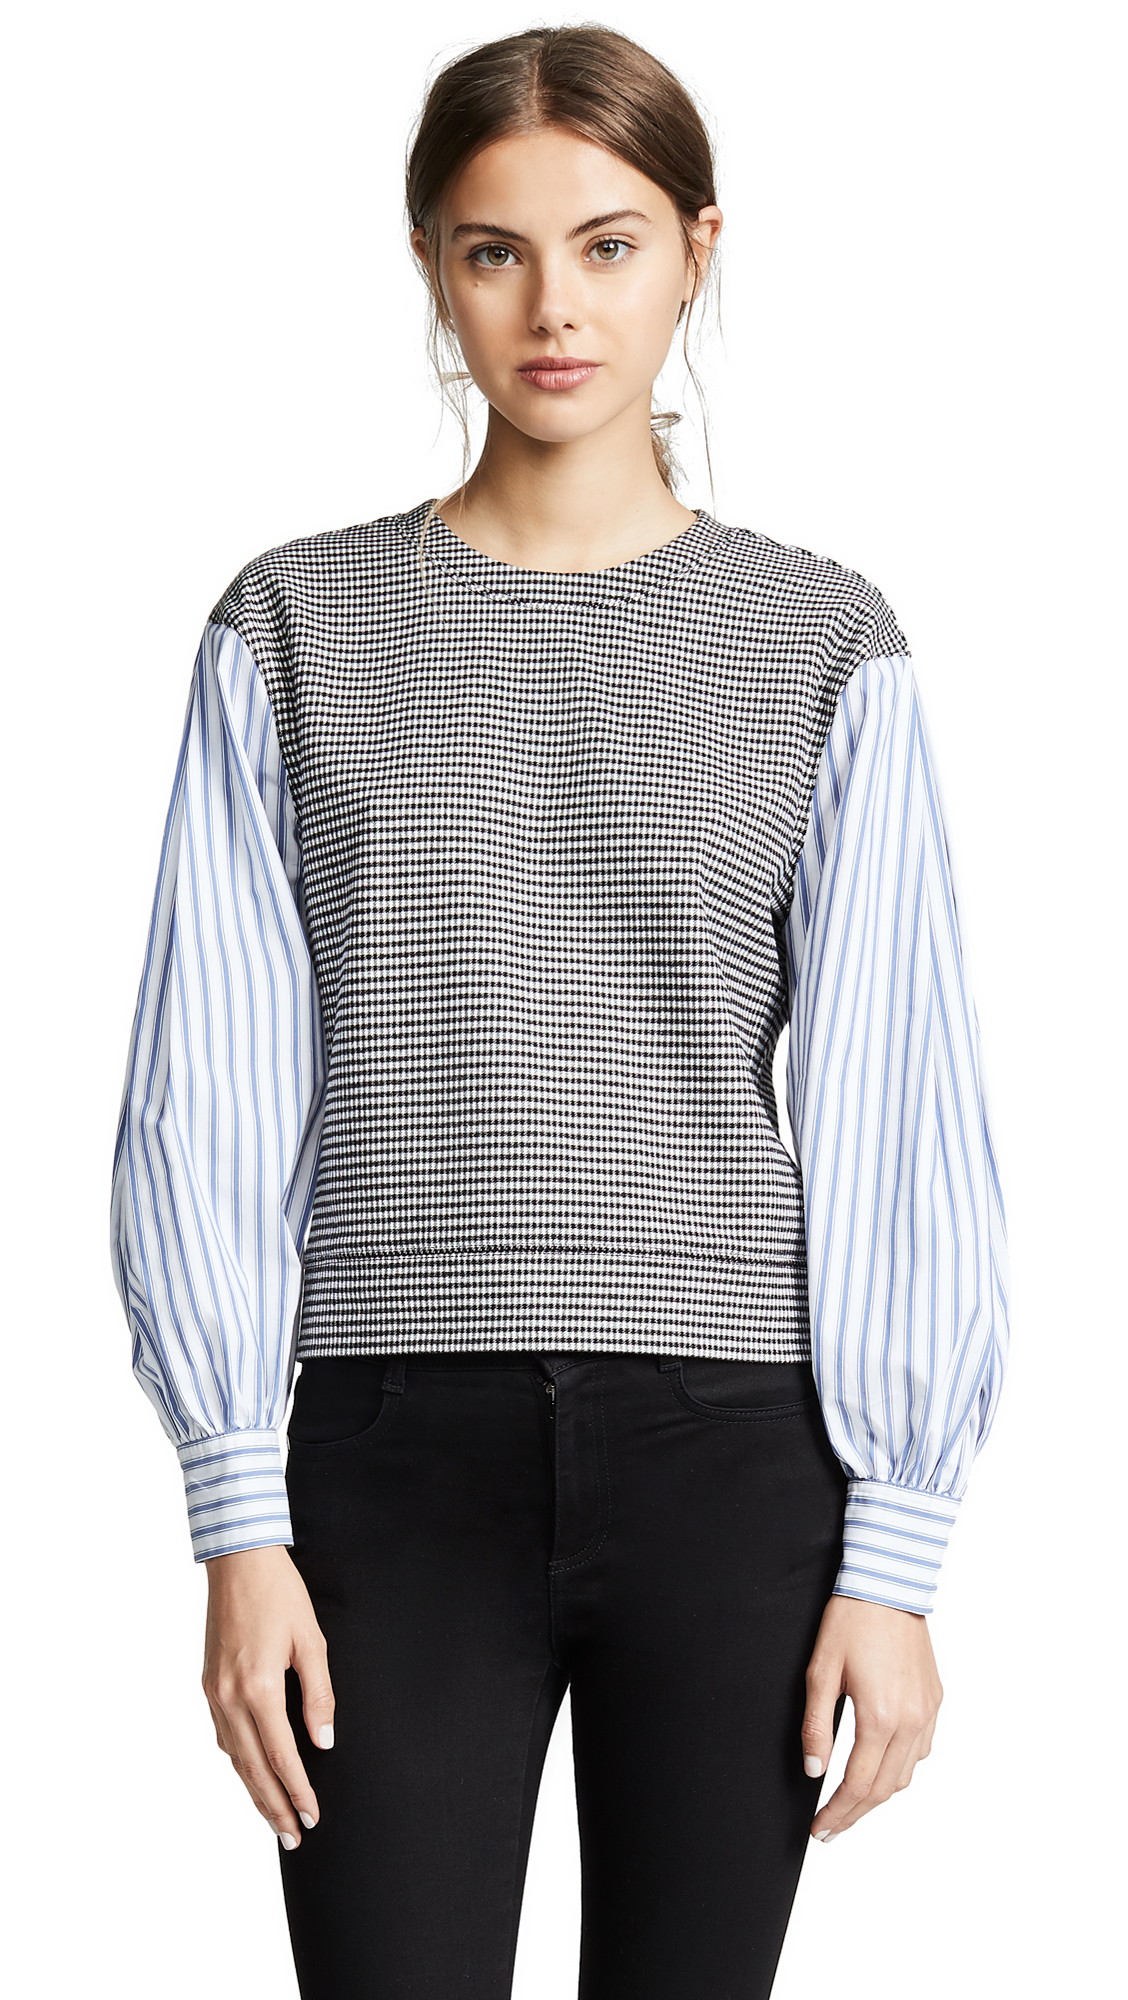 Derek Lam 10 Crosby Plaid Sweatshirt With Shirting Sleeves In Black-White